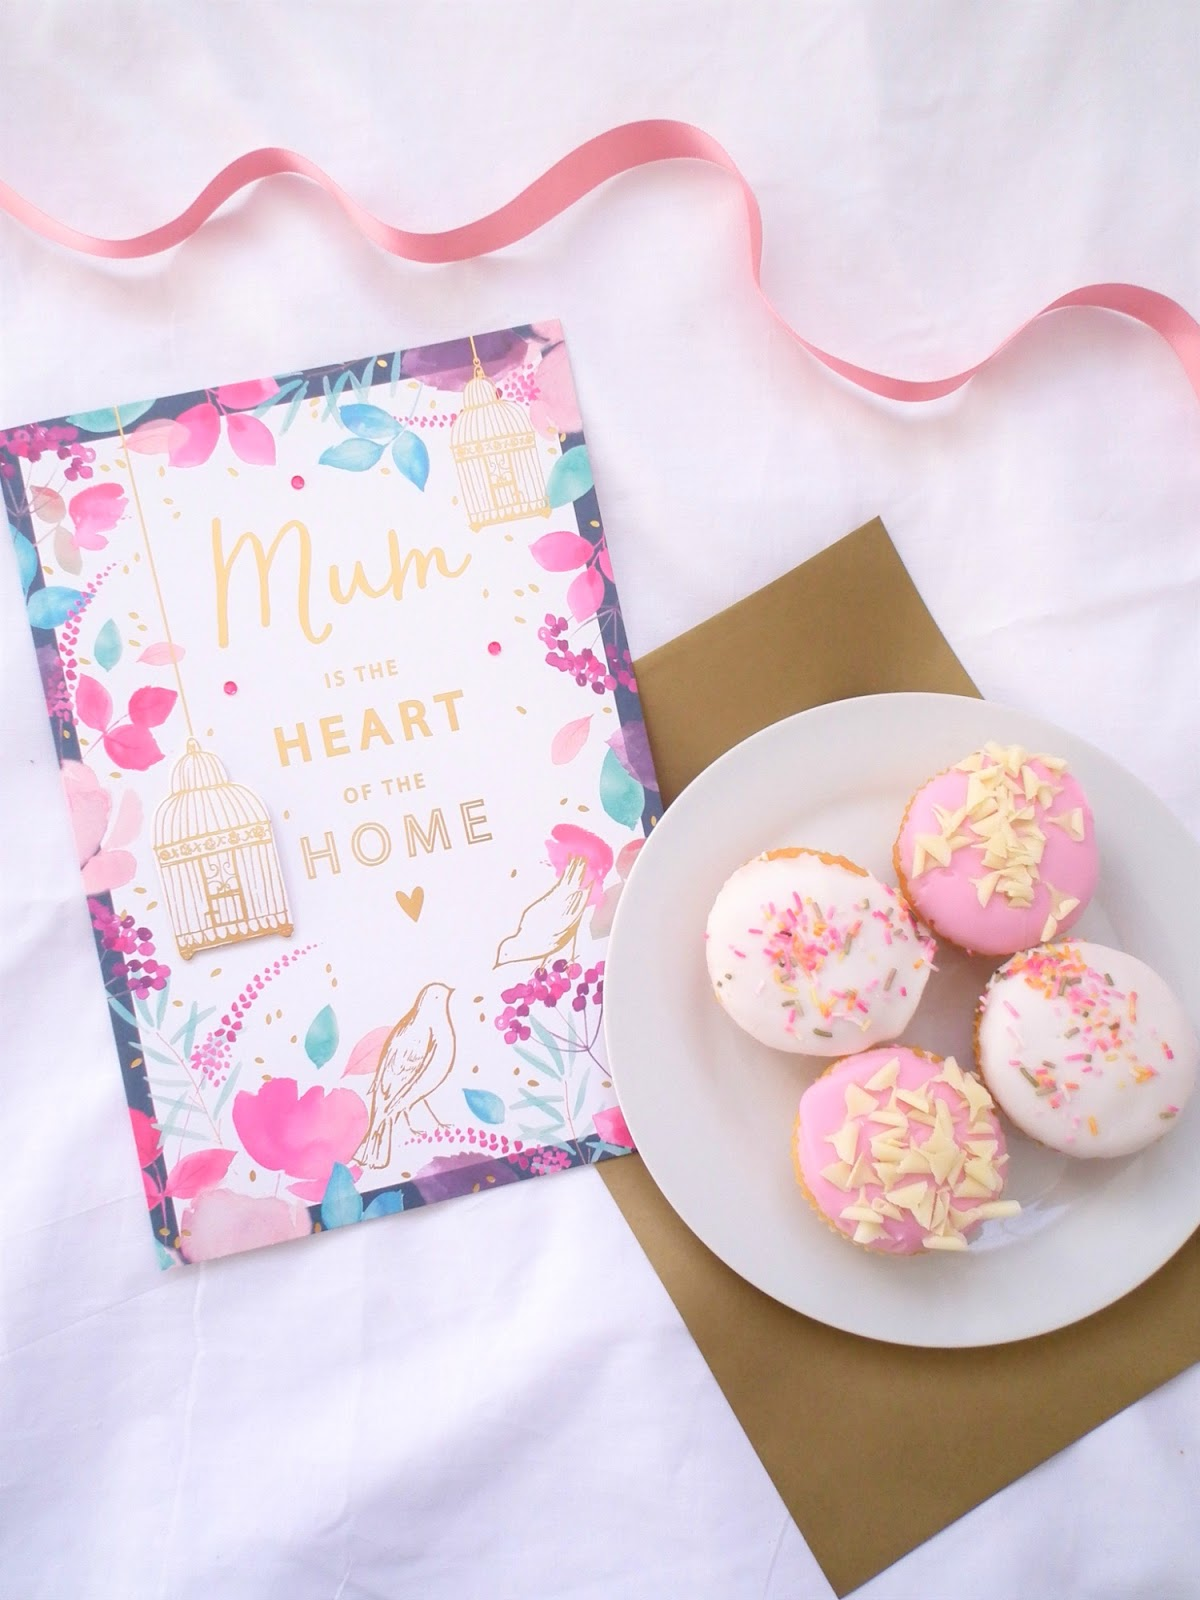 10 Ways To Treat Your Mum This Mothers Day